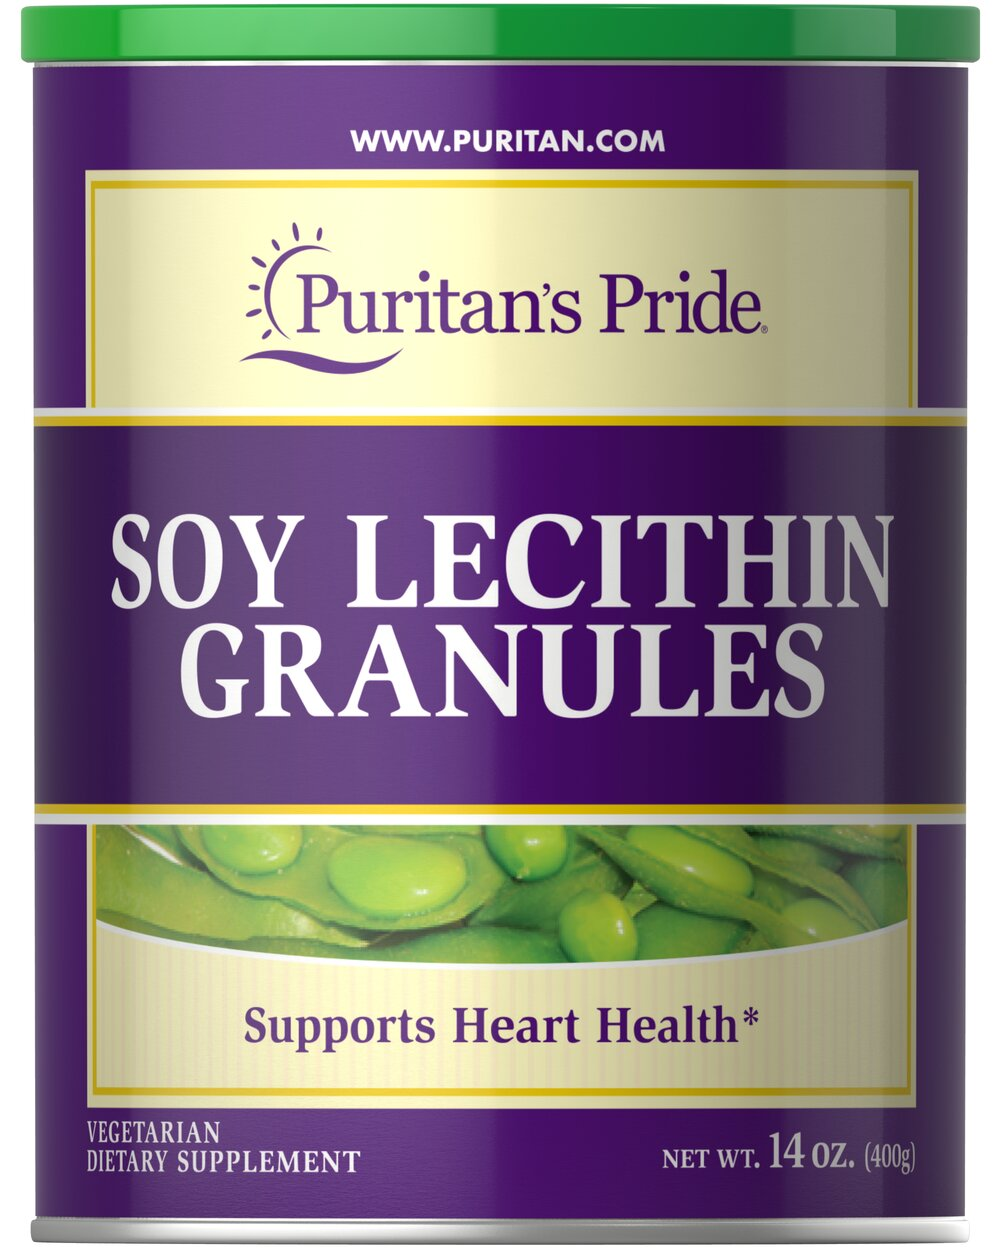 Soy Lecithin Granules 1680 mg <p>95% SOY PHOSPHATIDES </p><p>Finest Quality</p><p>Supports Mental Function & Nerve Cell Health**</p><p>Lecithin is an important natural source of choline, inositol, and linoleic acid. Choline and Inositol are vital components of all cell membranes, and play important roles in cell growth and function.**</p> 14 oz Granules 1680 mg $19.99